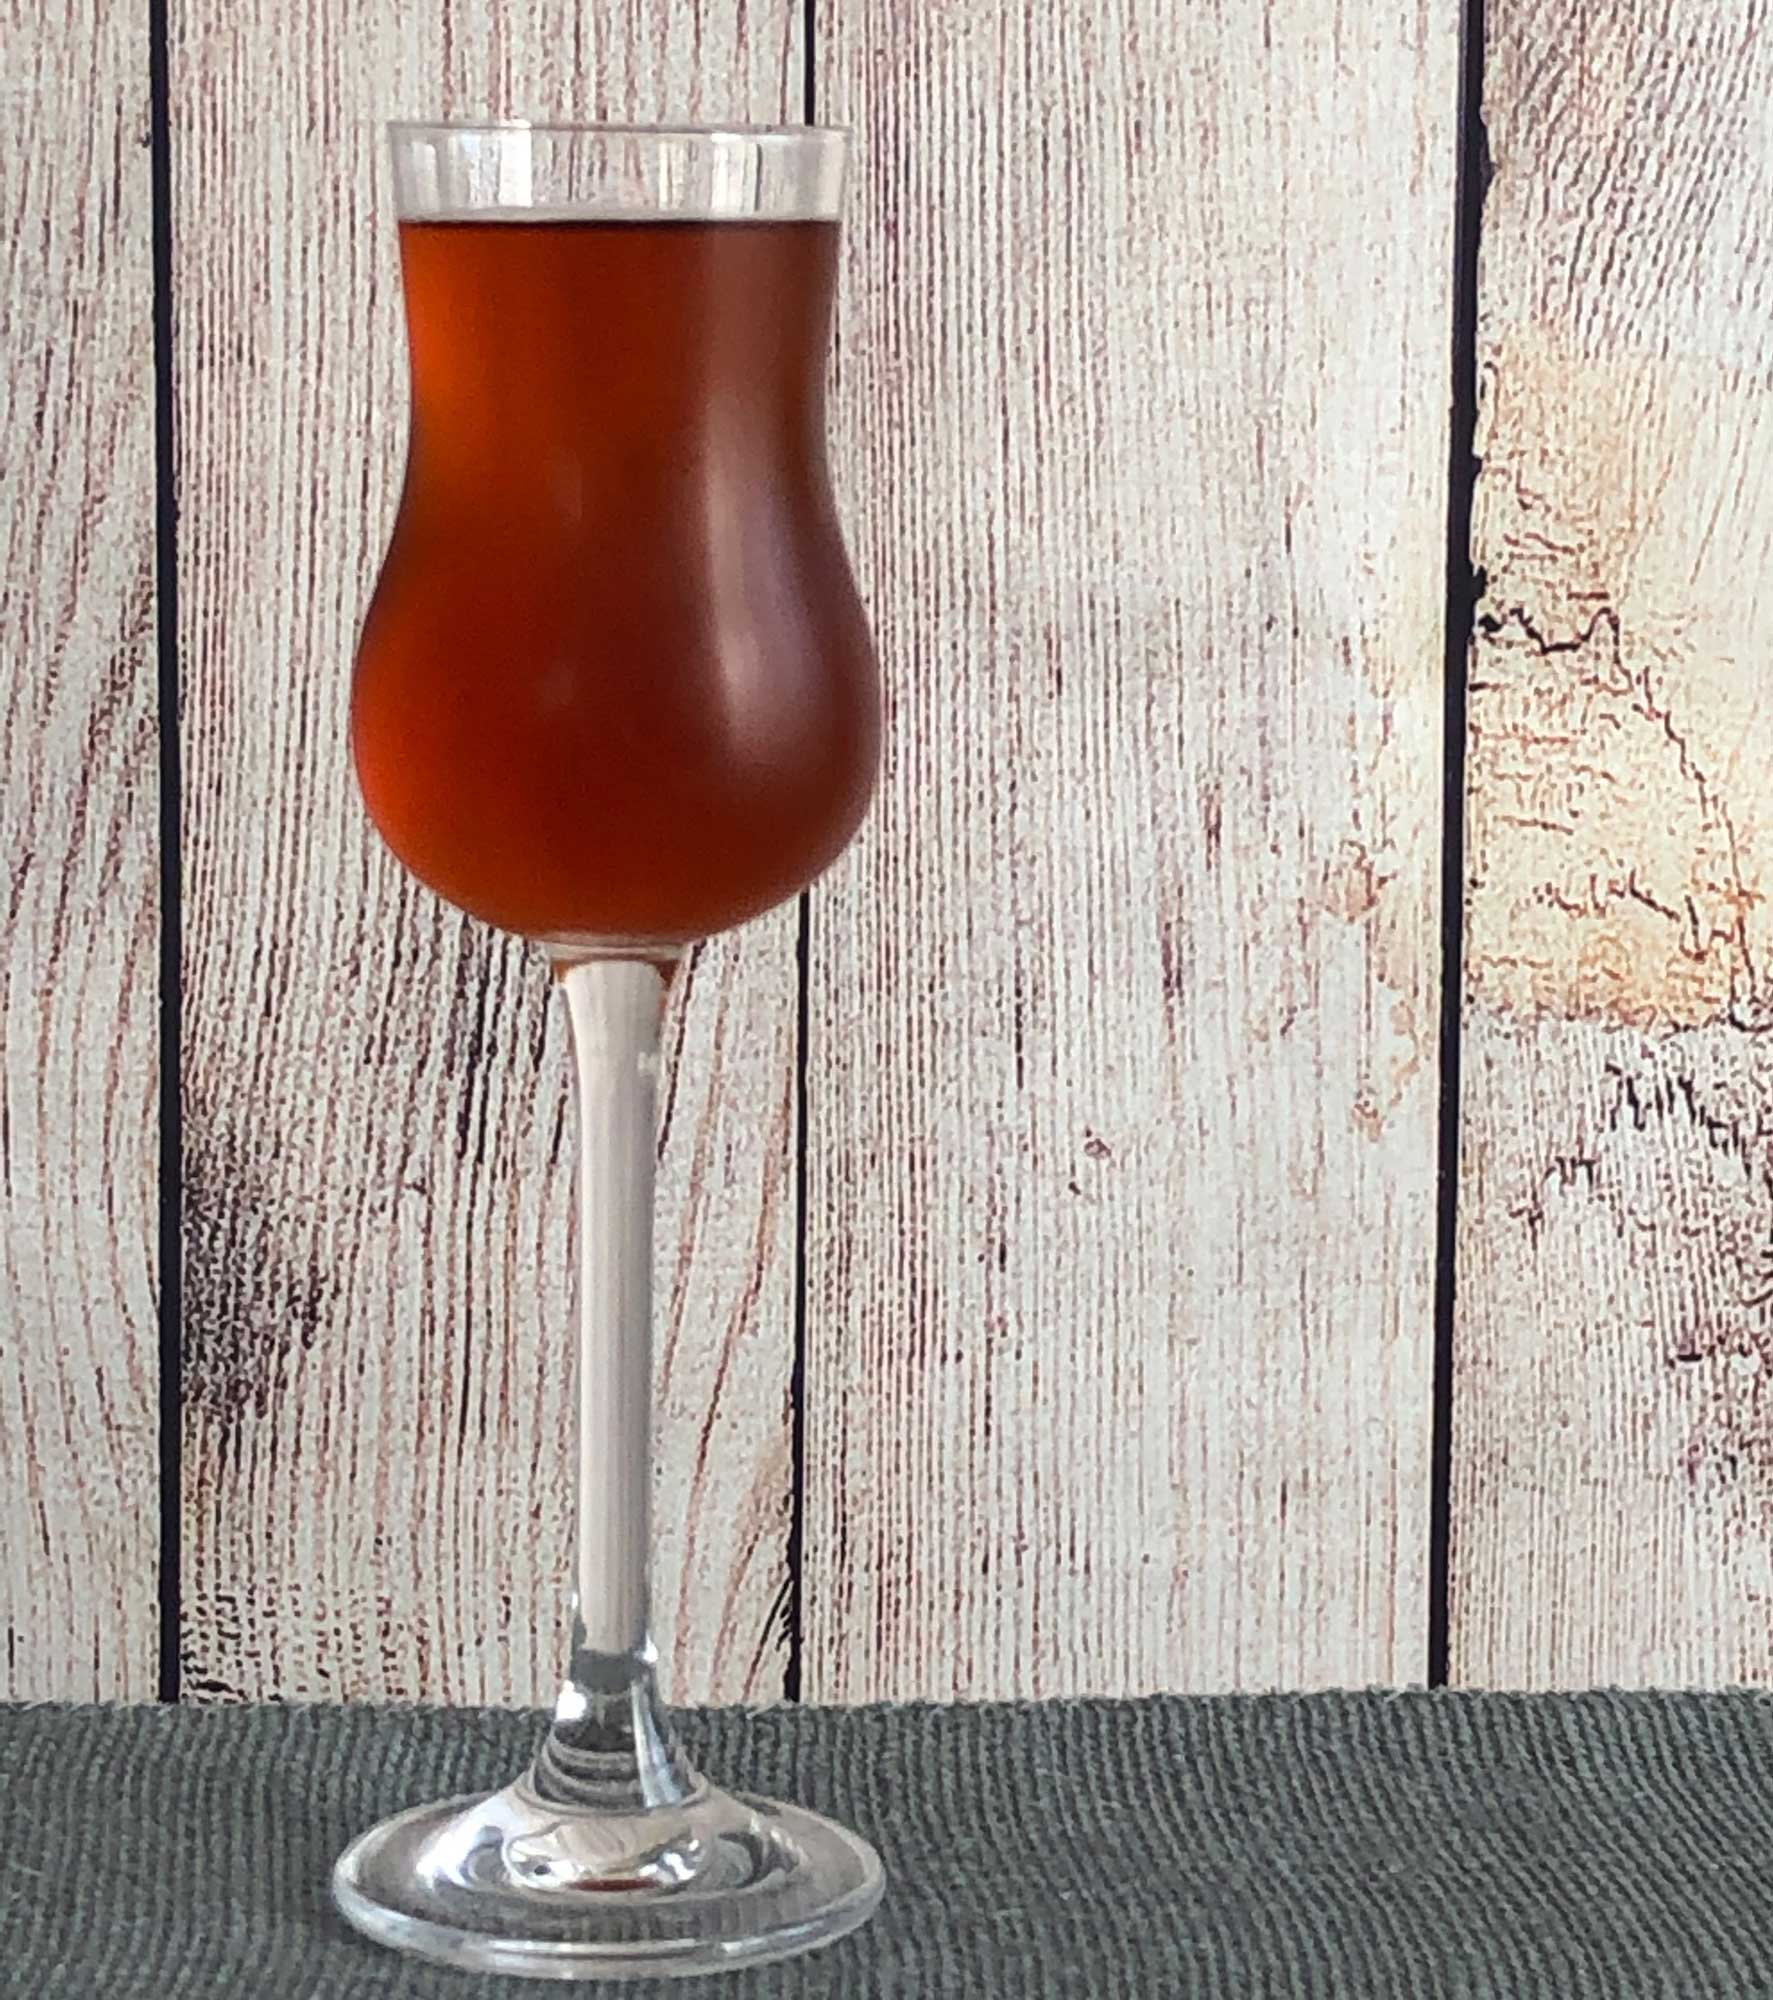 An example of the Firestarter, the mixed drink (cocktail) featuring Mattei Cap Corse Rouge Quinquina, and Dolin Génépy le Chamois Liqueur; photo by Lee Edwards